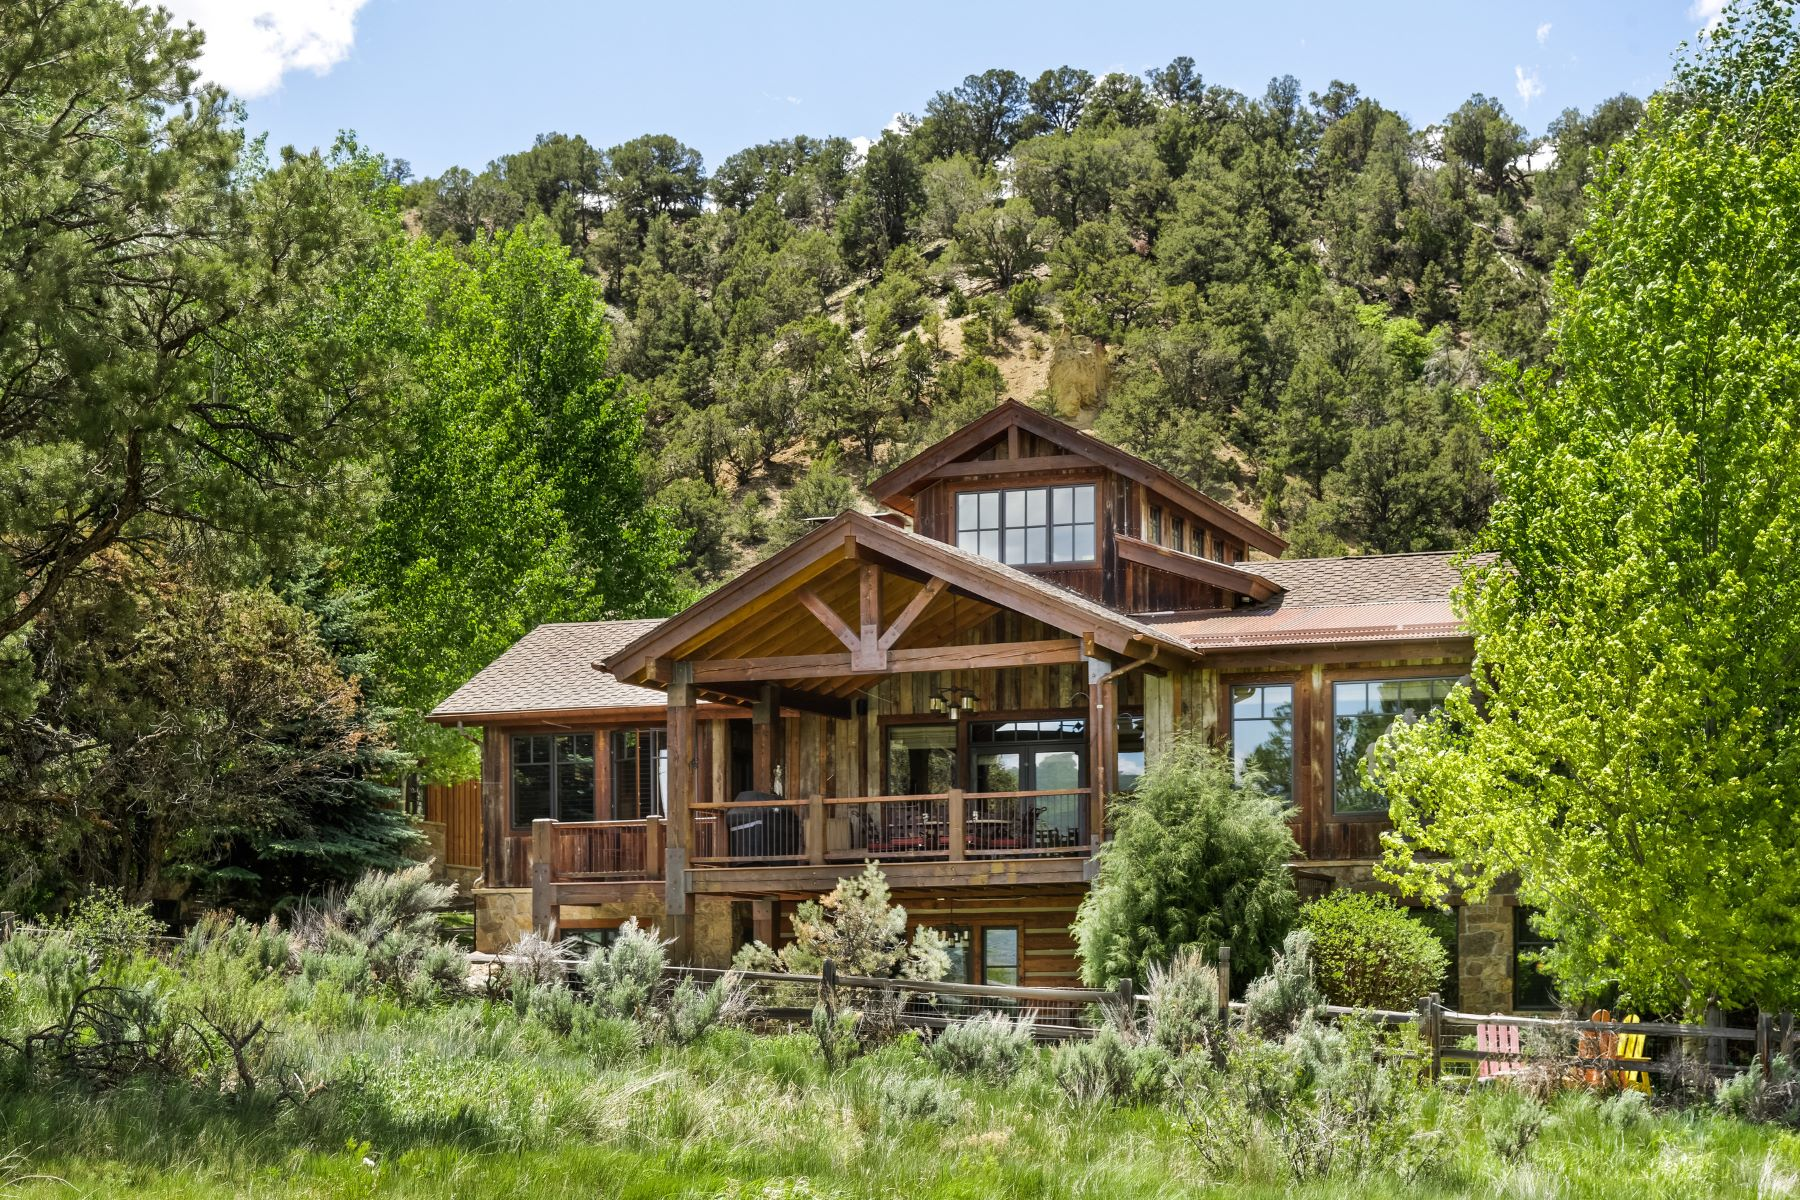 Single Family Home for Active at Classic Custom Mountain Home 3976 Crystal Bridge Drive Carbondale, Colorado 81623 United States